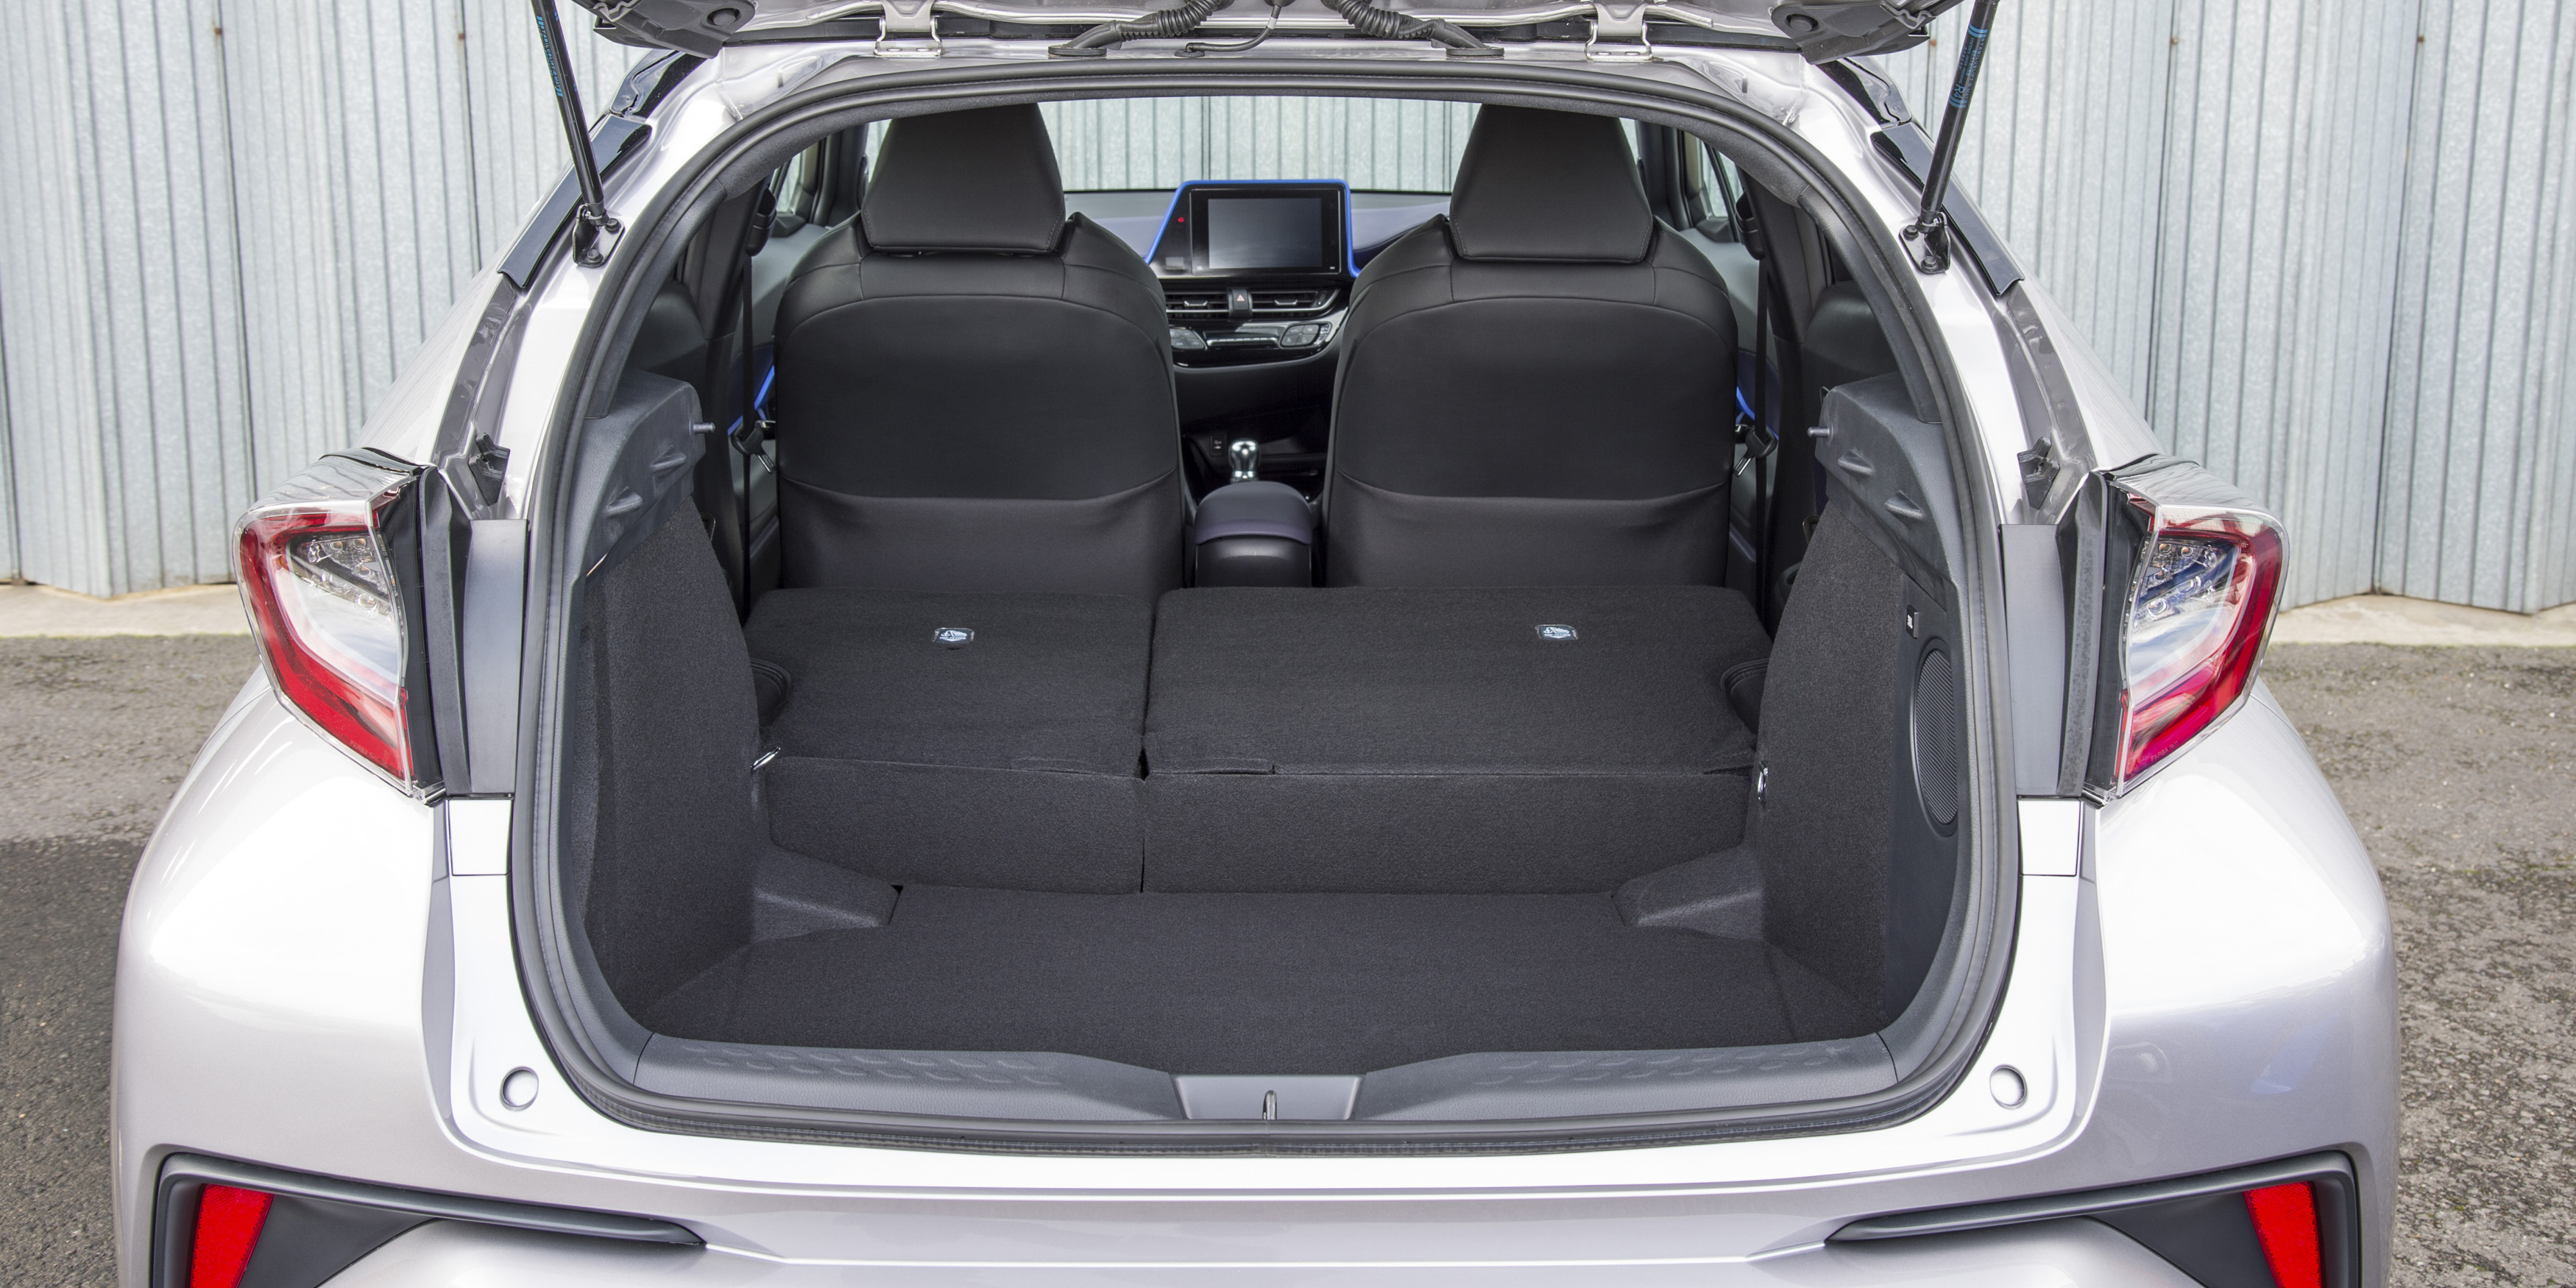 Fold The Rear Seats Down And There\u0027s A 1,160-litre Space \u2013 Way On  1,655-litre VW Tiguan